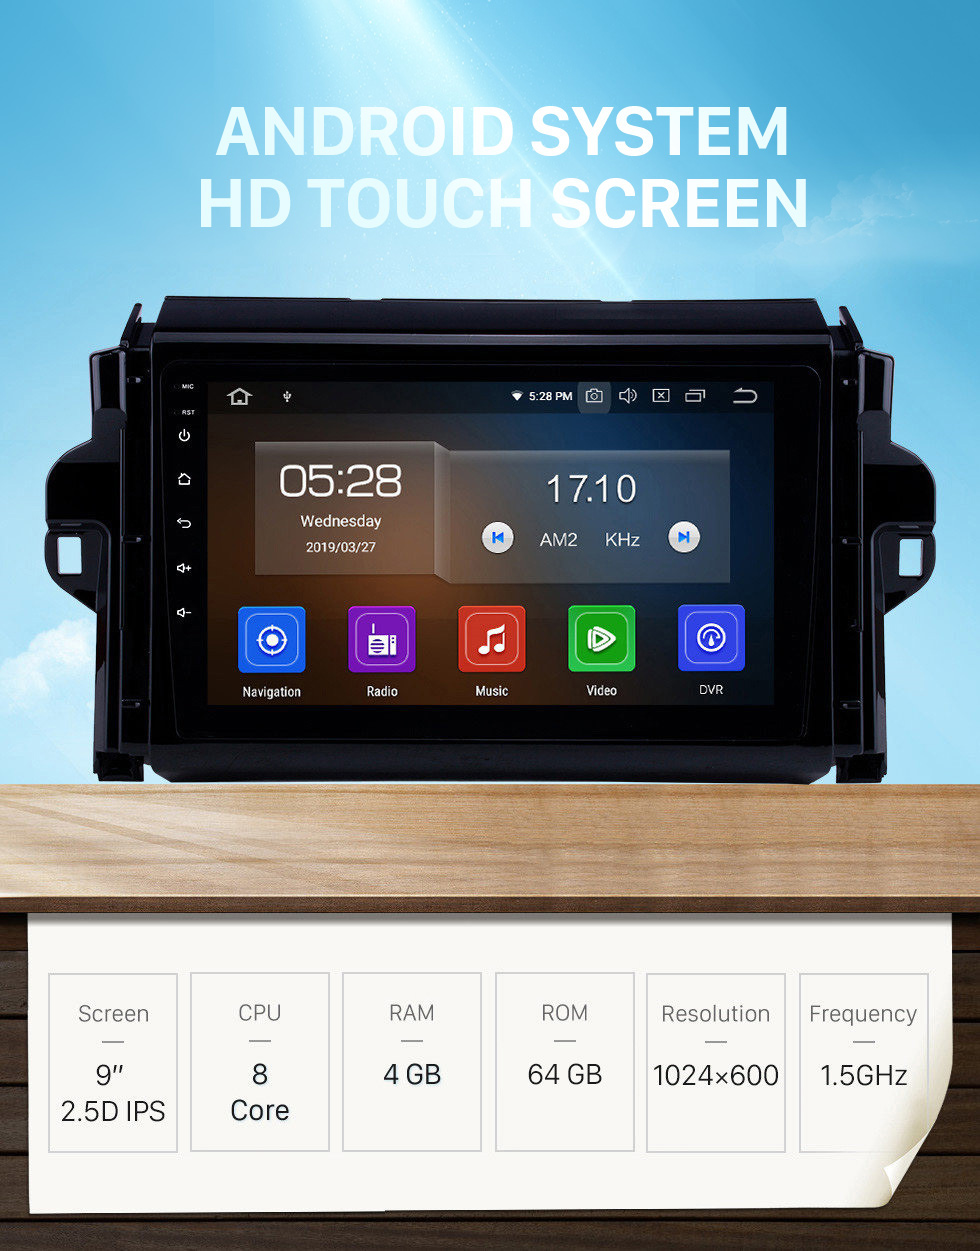 Seicane 9 inch Android 10.0 HD Touchscreen auto stereo GPS Radio GPS Navigation System For 2015-2018 TOYOTA FORTUNER/ COVERT Bluetooth Support DVR Vedio Carplay 3G/4G WIFI Steering Wheel Control